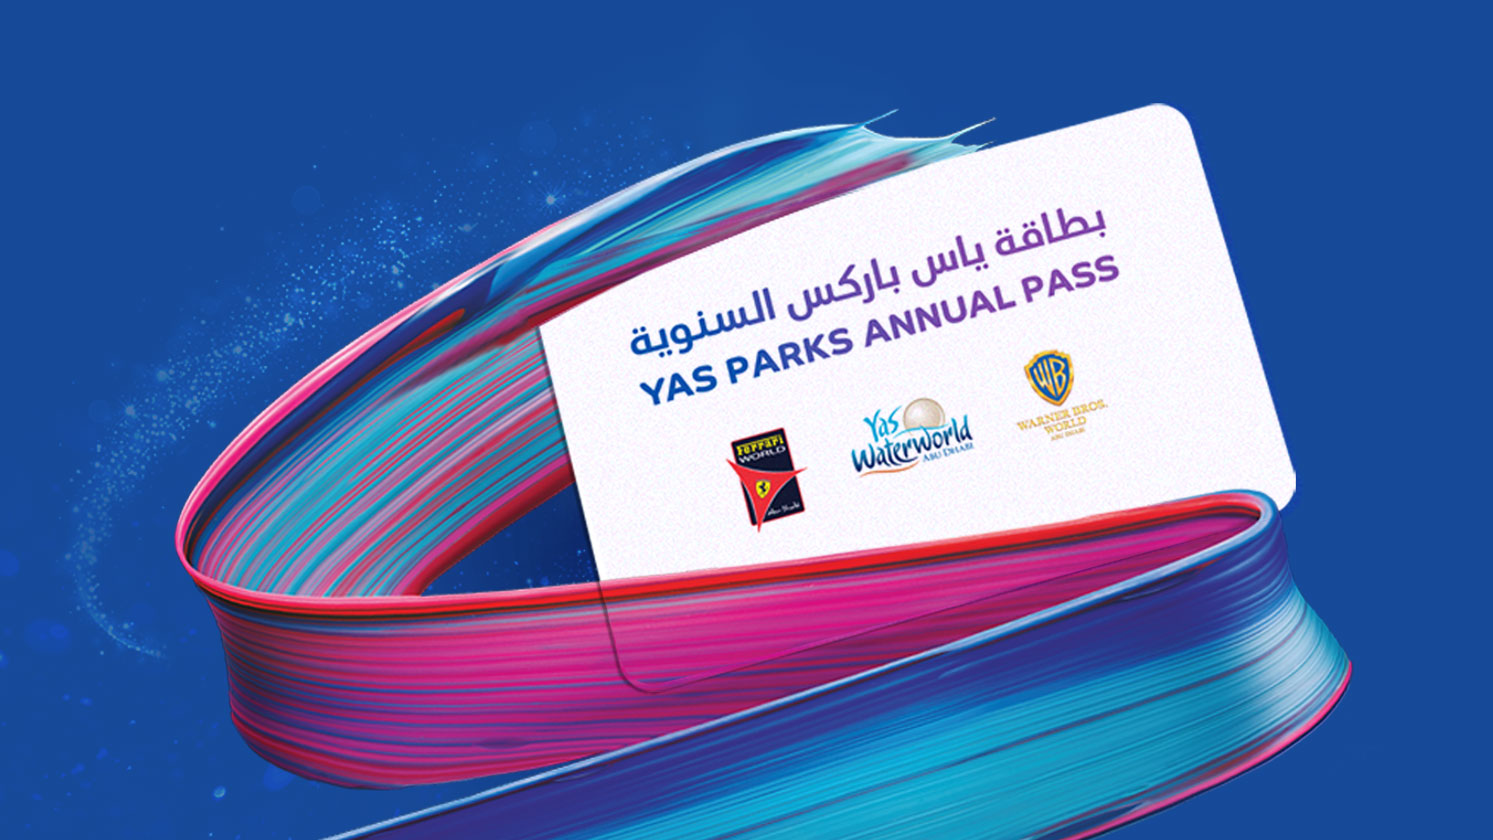 WARNER BROS. WORLD™ ABU DHABI - Yas Parks Annual Pass